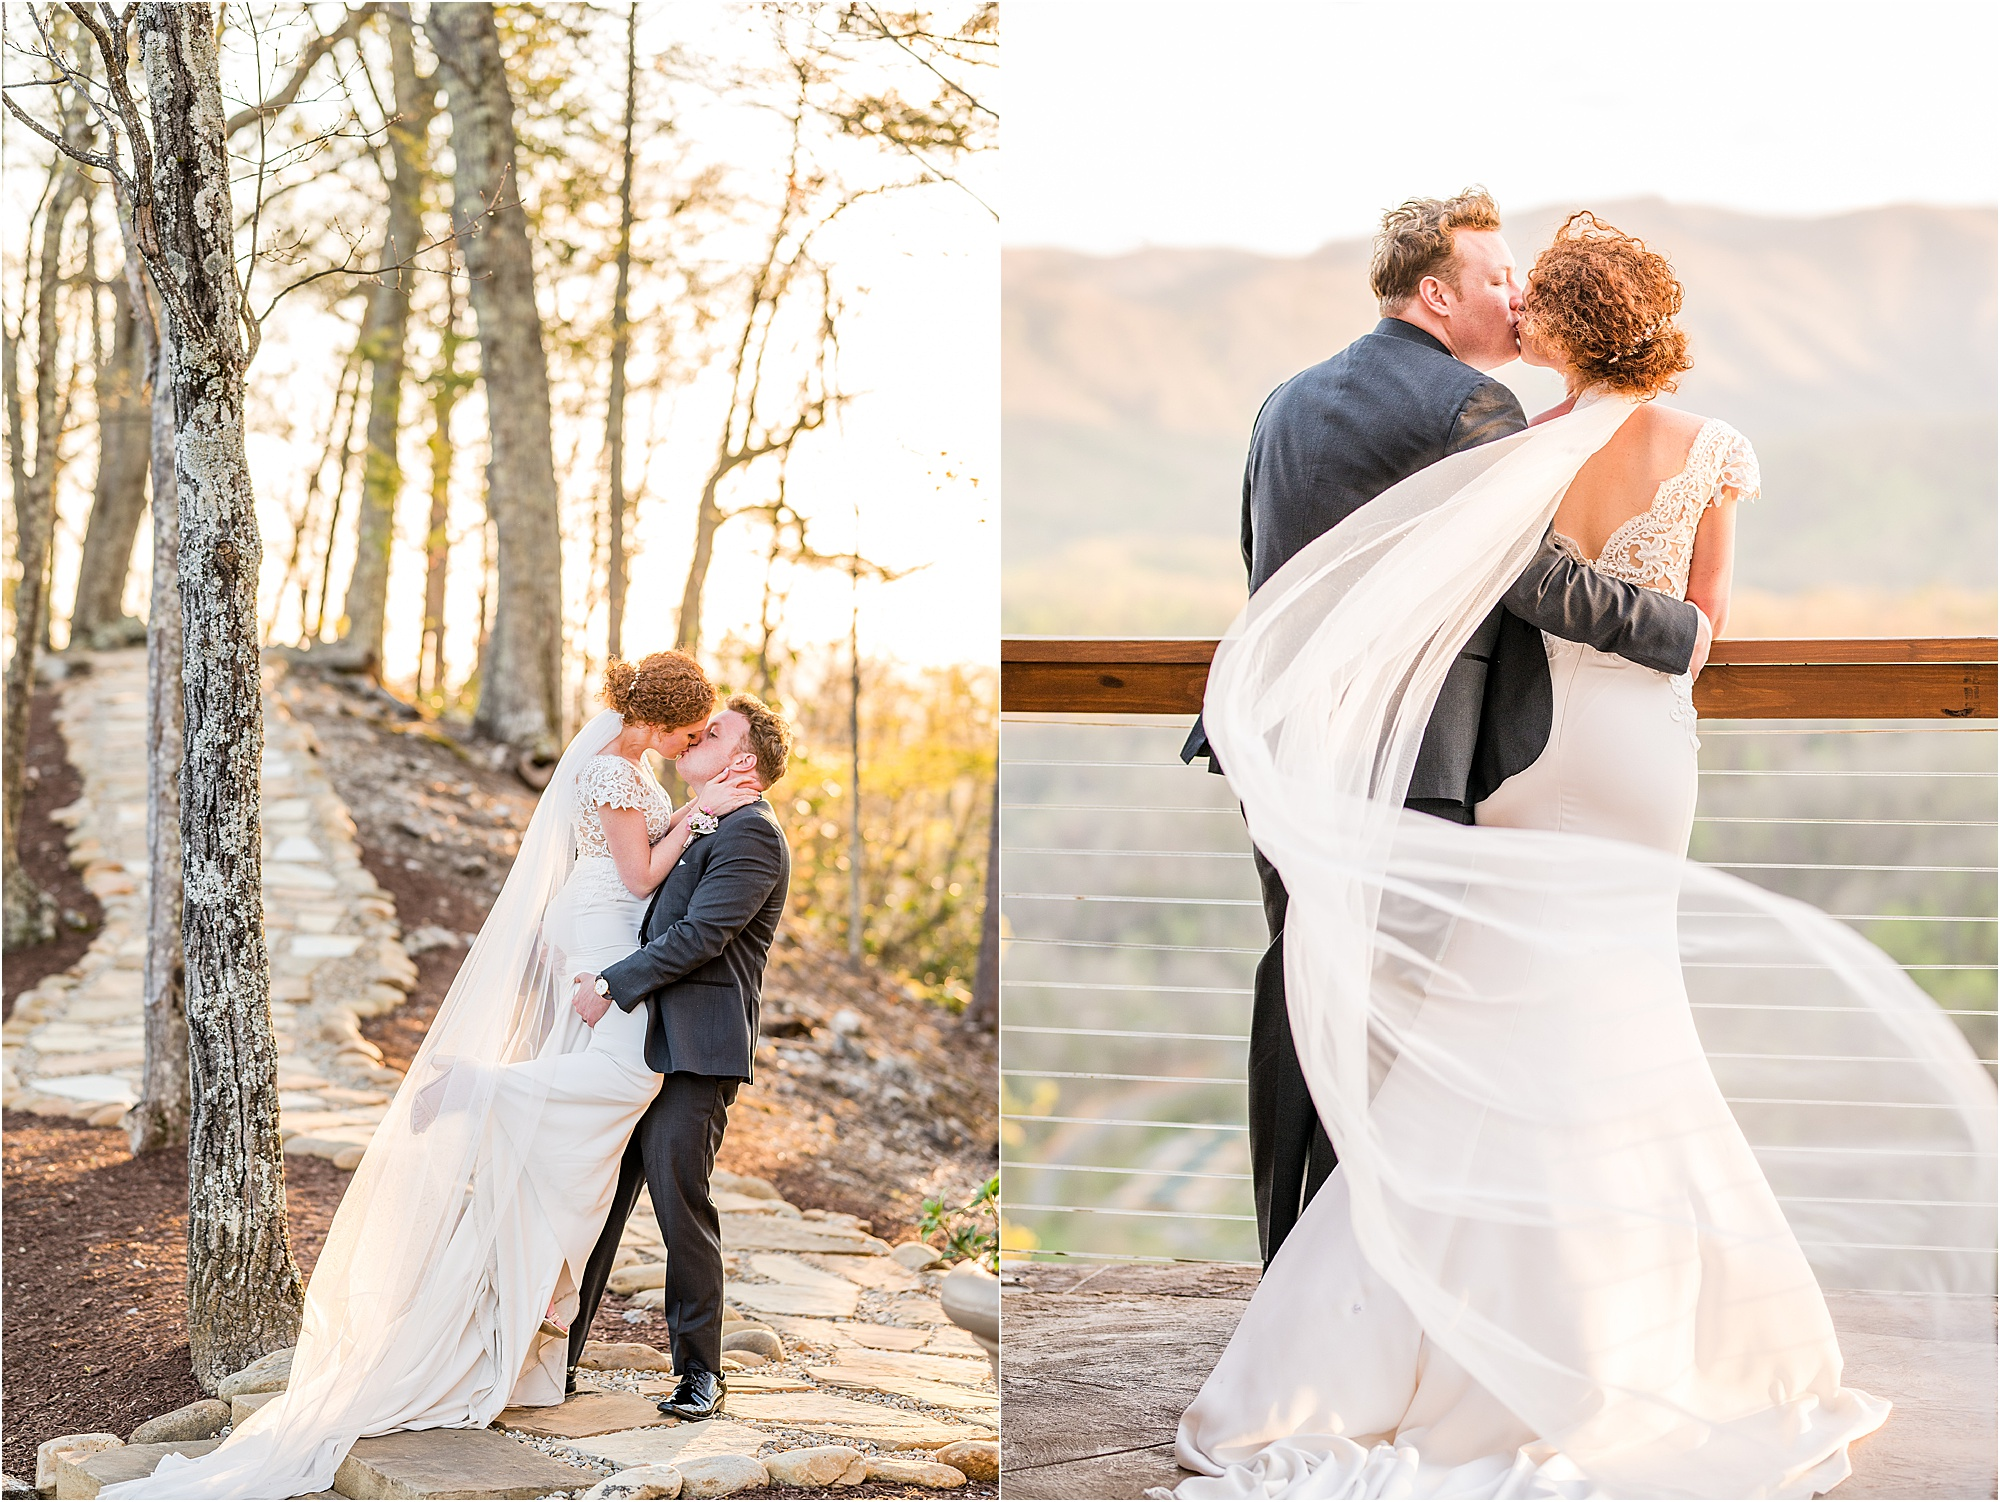 golden hour couple photos at The Magnolia Venue in Pigeon Forge, Tennessee